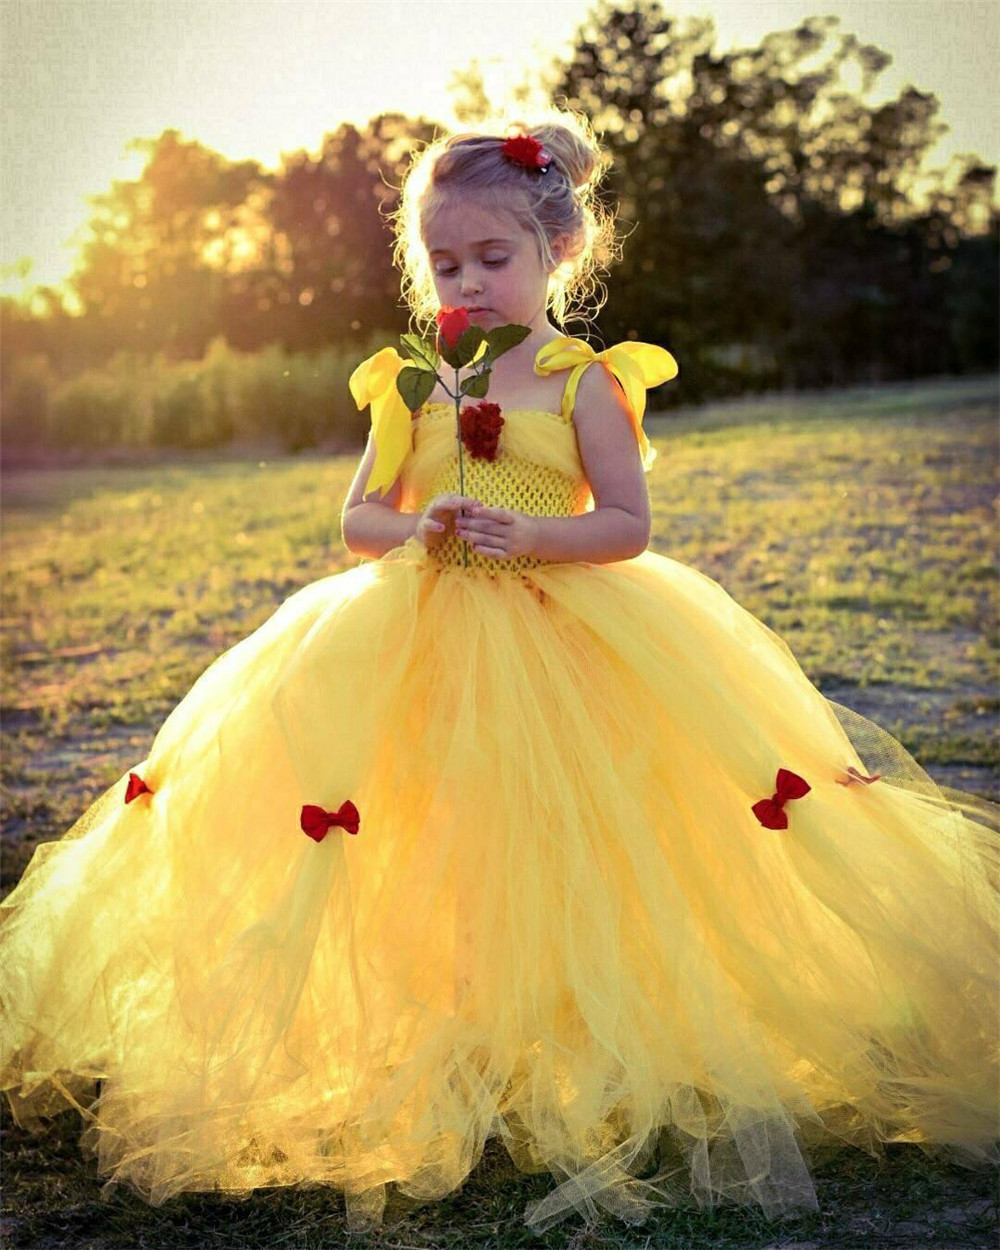 Girls Yellow Princess Tutu Dress Kids Crochet Tulle Flower Dresses Ball Gown With Red Ribbon Bow Children Party Costume Dresses